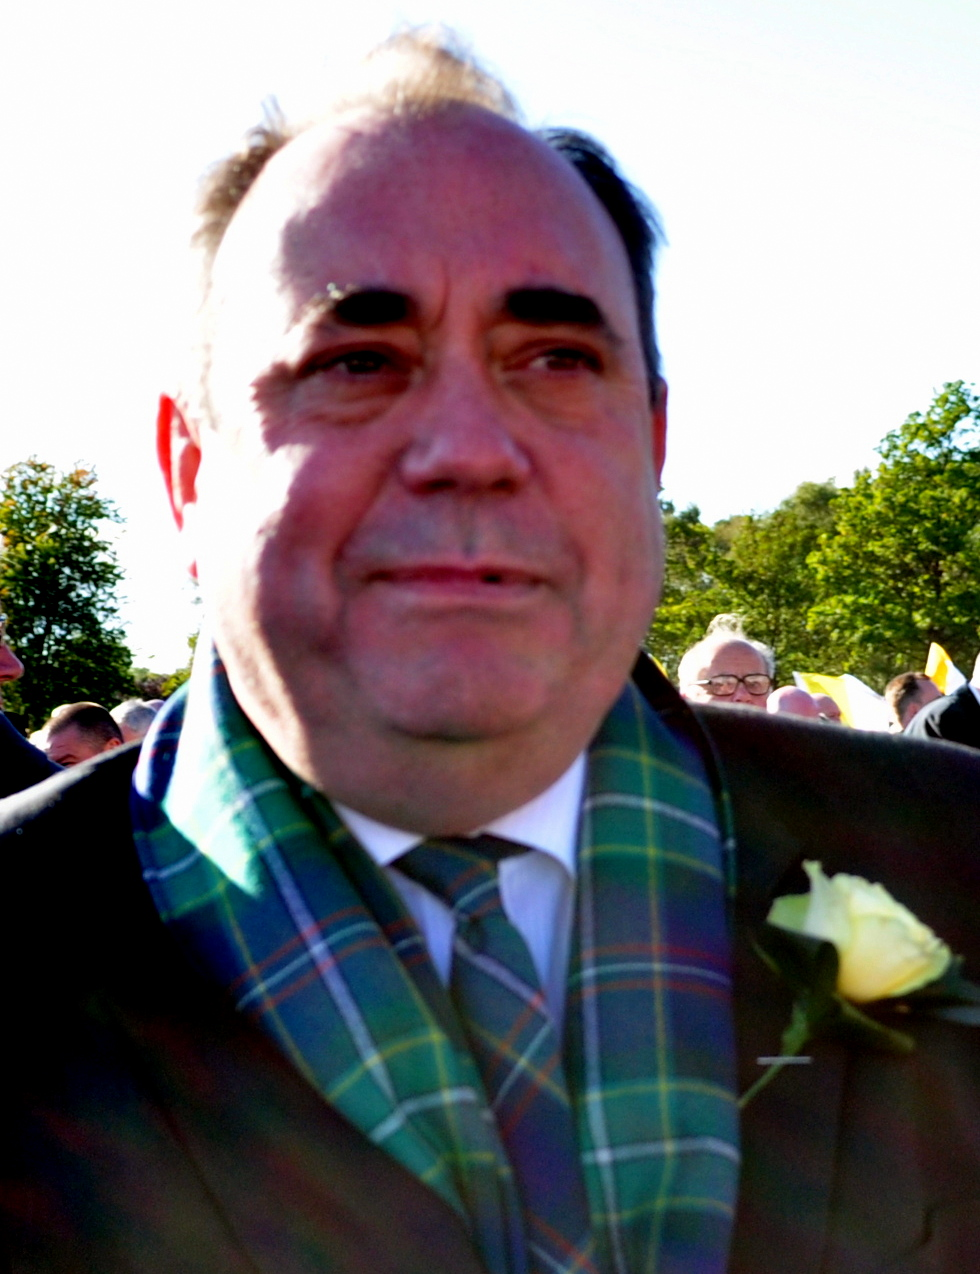 DANI GARAVELLI ON THE ALEX SALMOND TRIAL